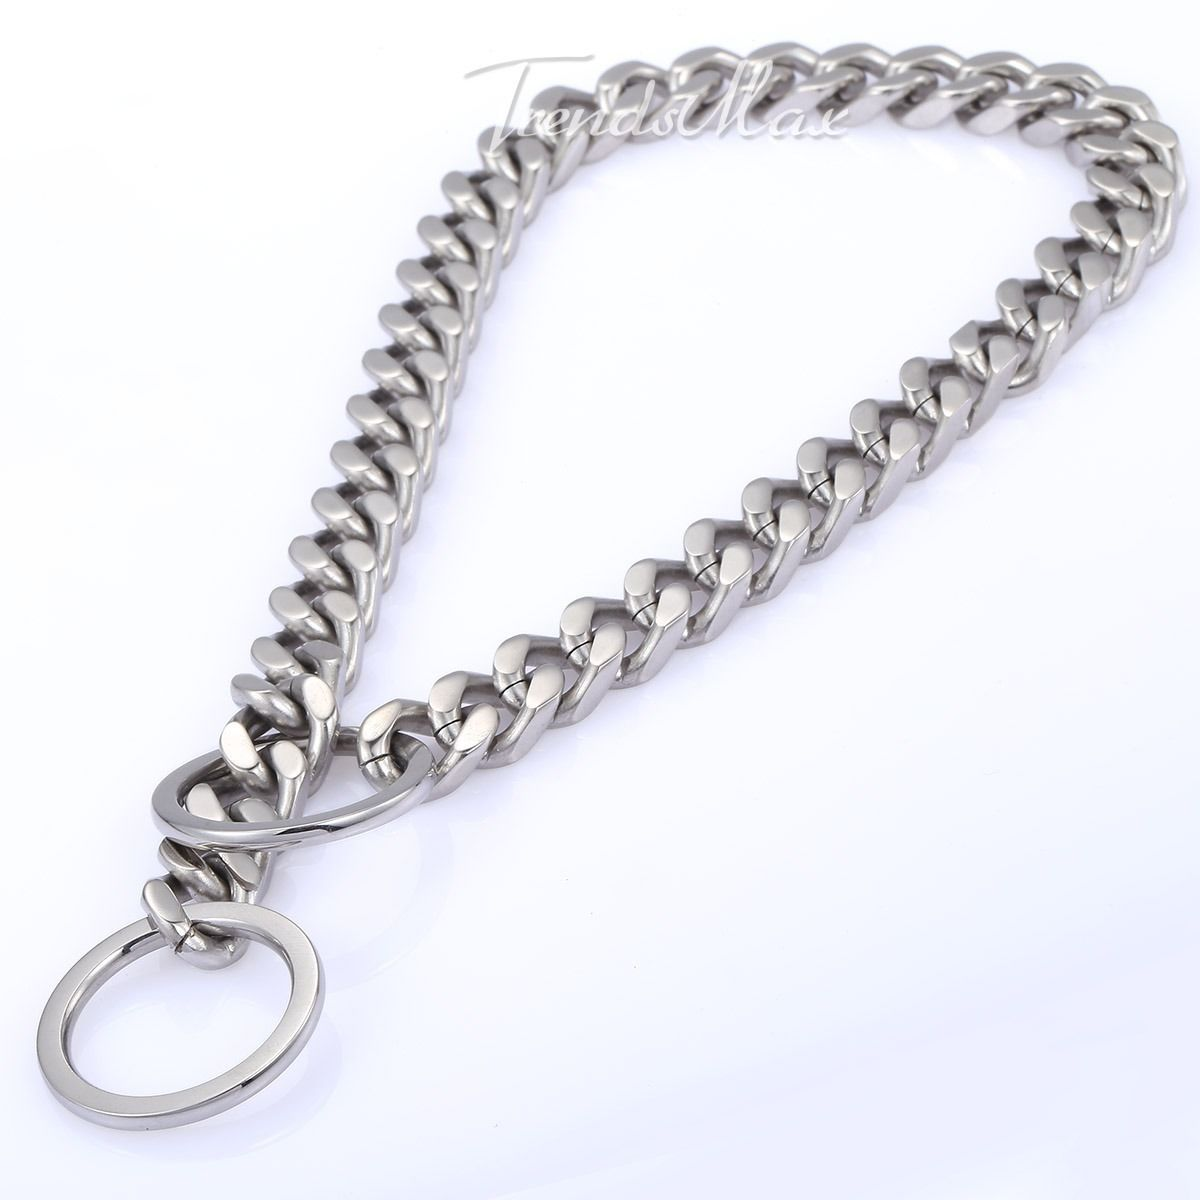 how to clean silver dog chain